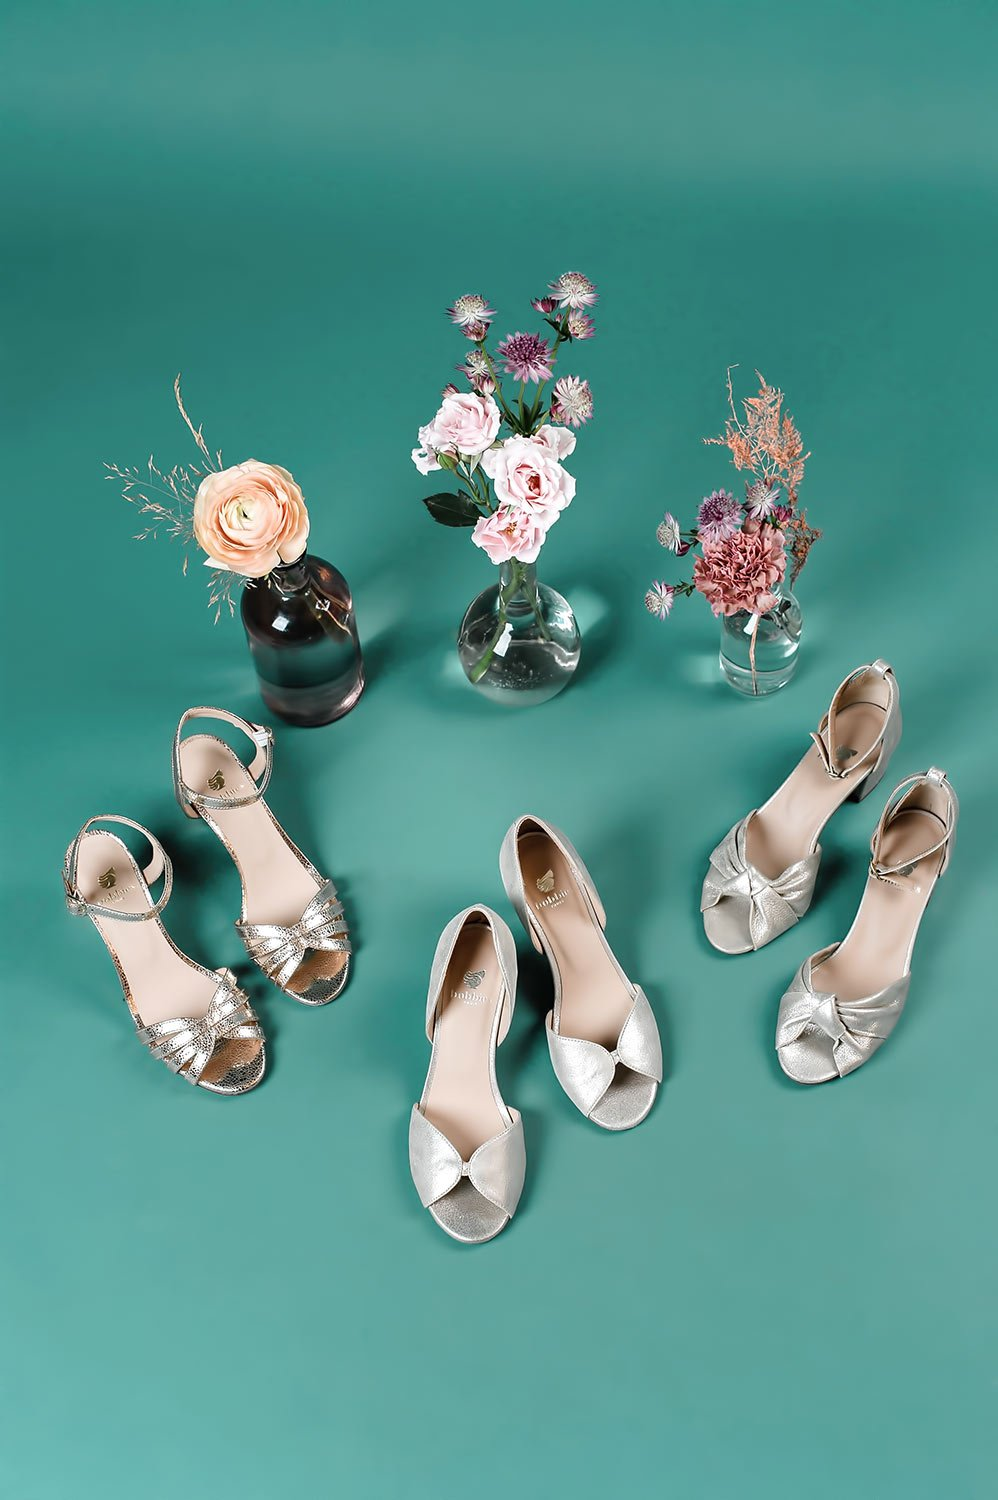 chaussure mariage bobbies ensemble inspiration mariage